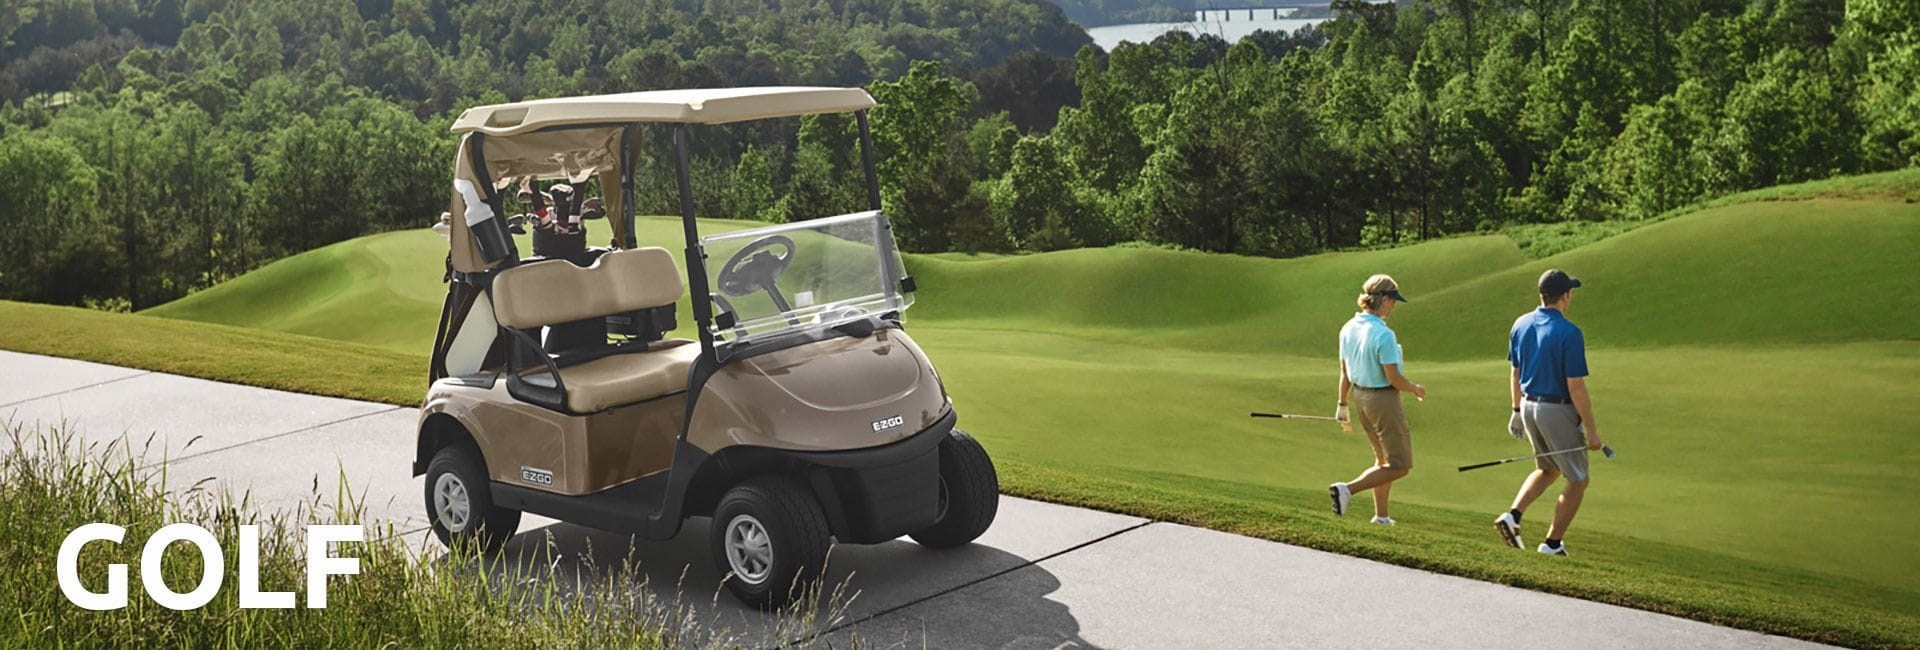 New Trailers for Vehicles | Golf Car World